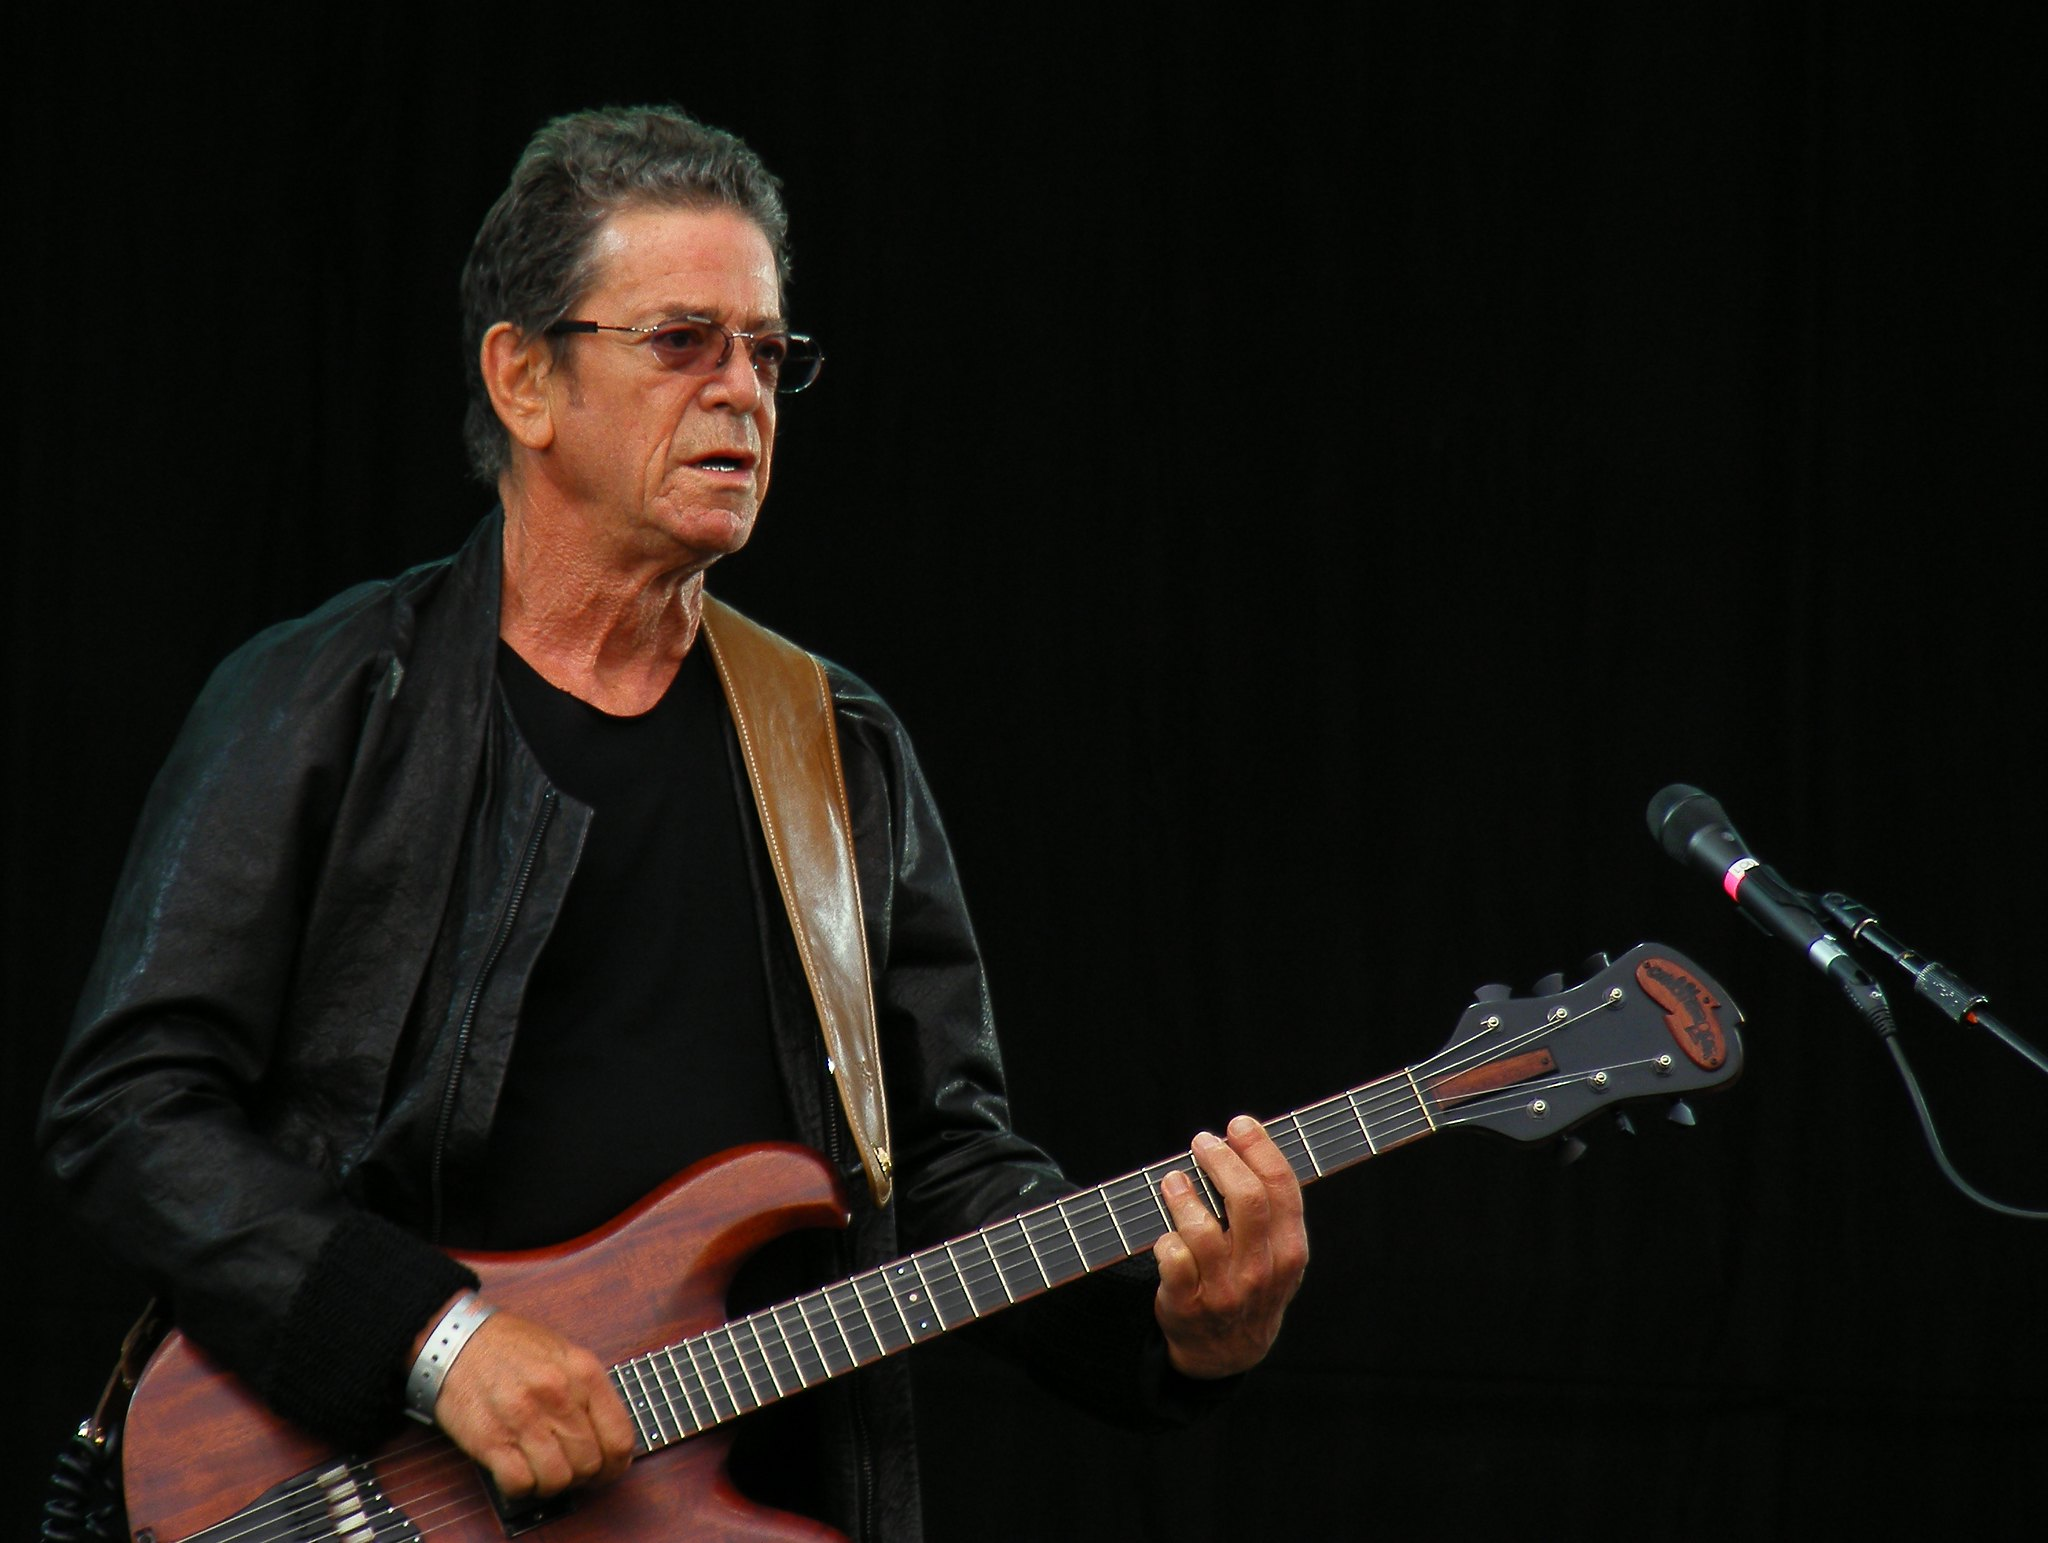 Lou Reed. Photo by Man Alive! (CC BY 2.0) https://creativecommons.org/licenses/by/2.0/